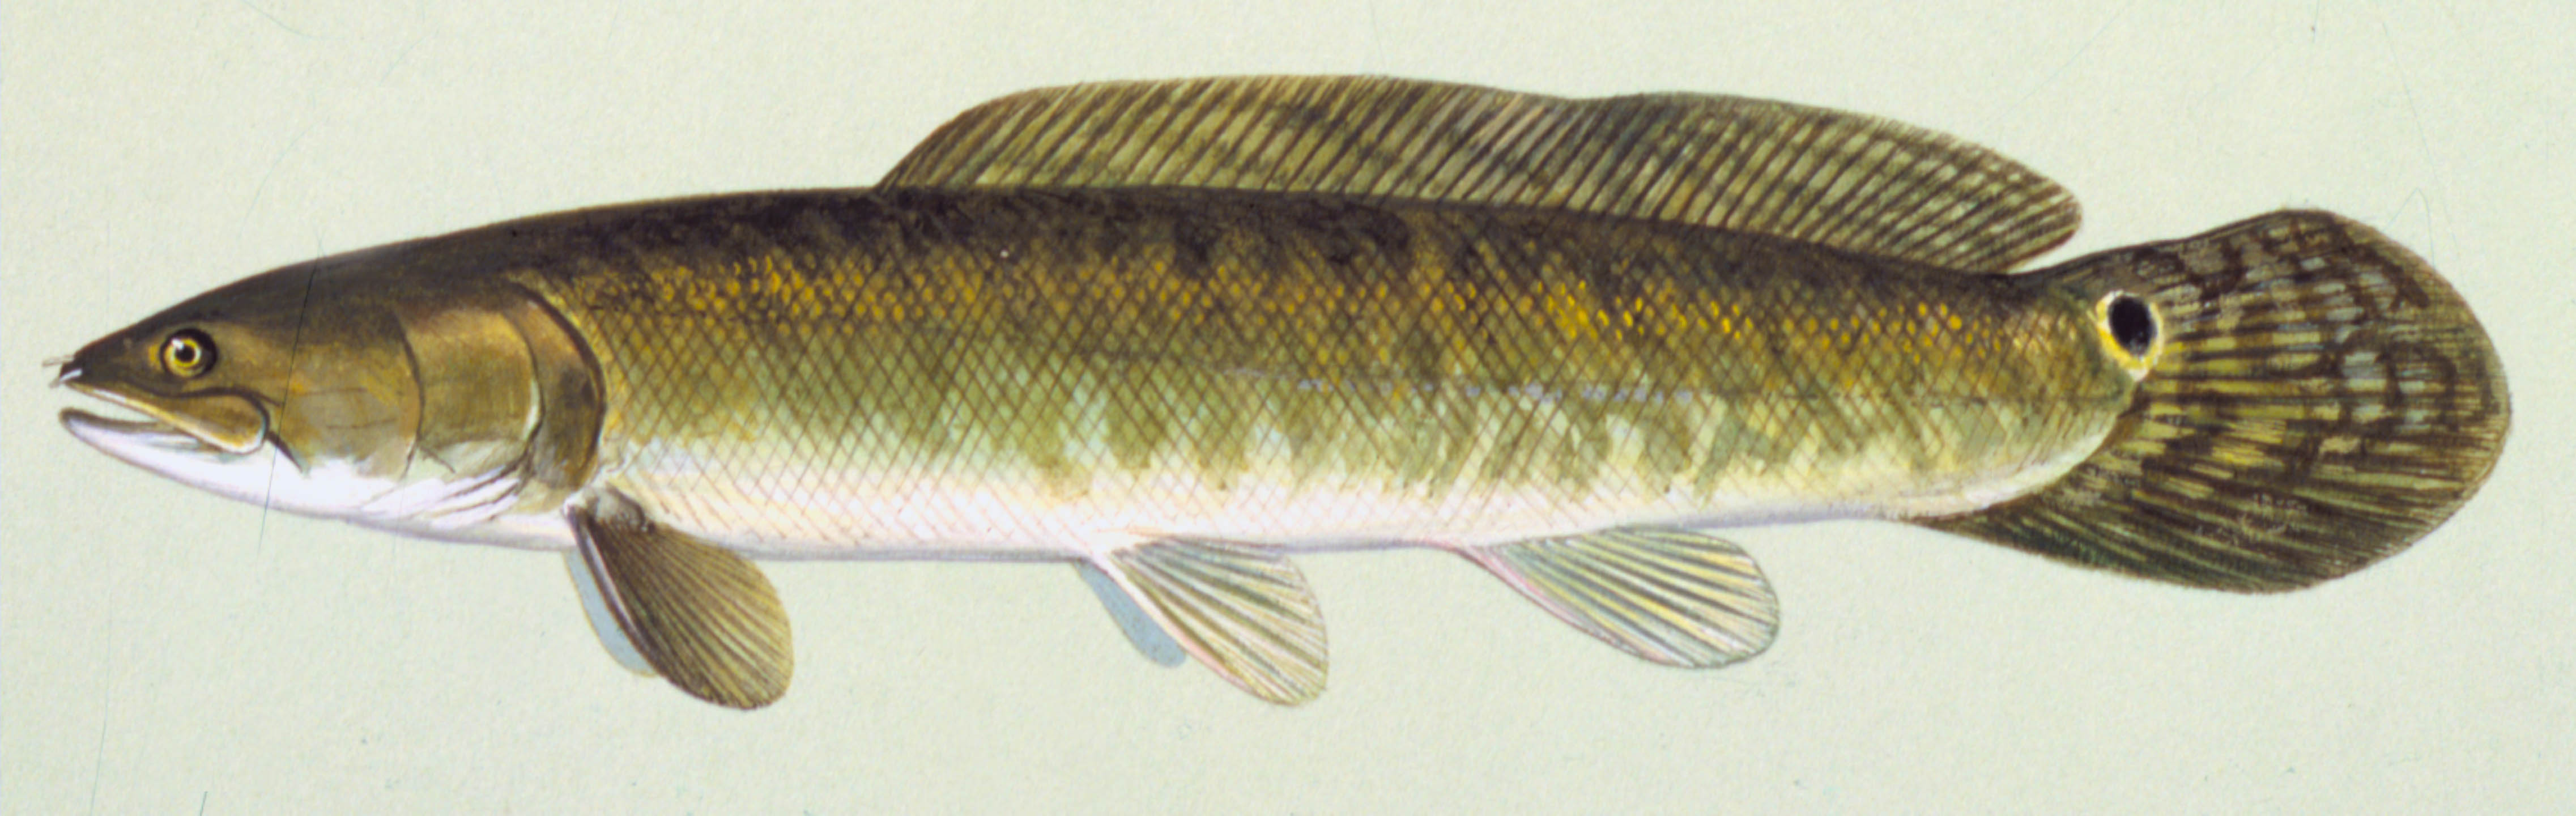 Bowfin, illustration by Maynard Reece, from Iowa Fish and Fishing.